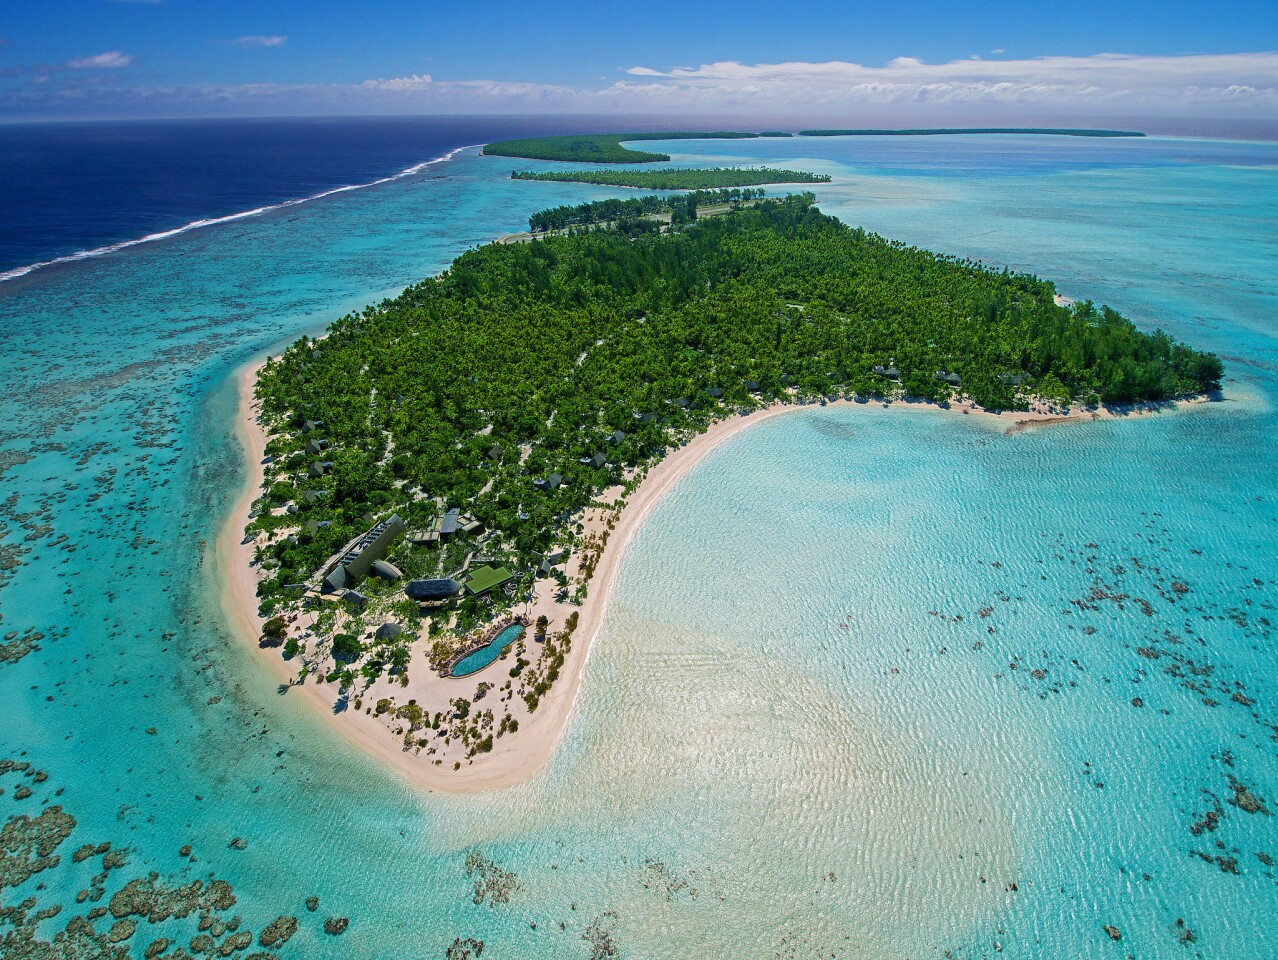 Tetiaroa, the atoll in French Polynesia that Marlon Brando purchased in the 1960s, is now home to the Brando, an eco-resort.